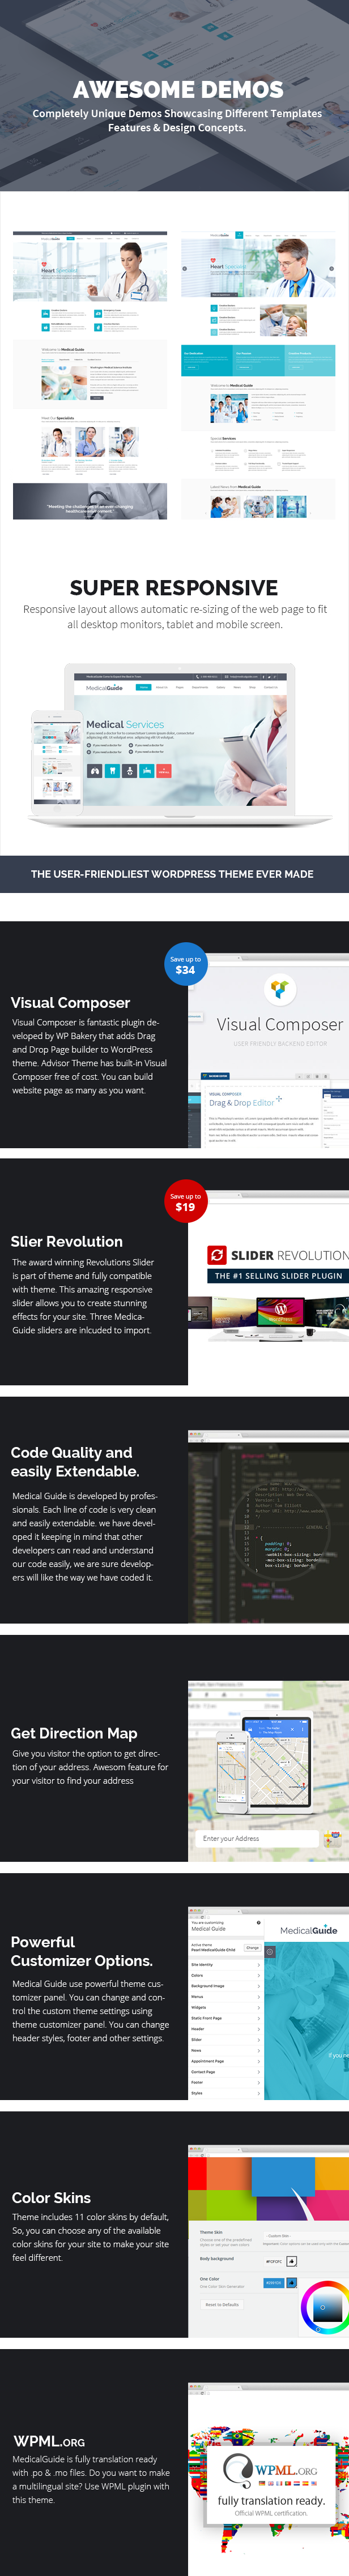 MedicalGuide - Health and Medical WordPress Theme